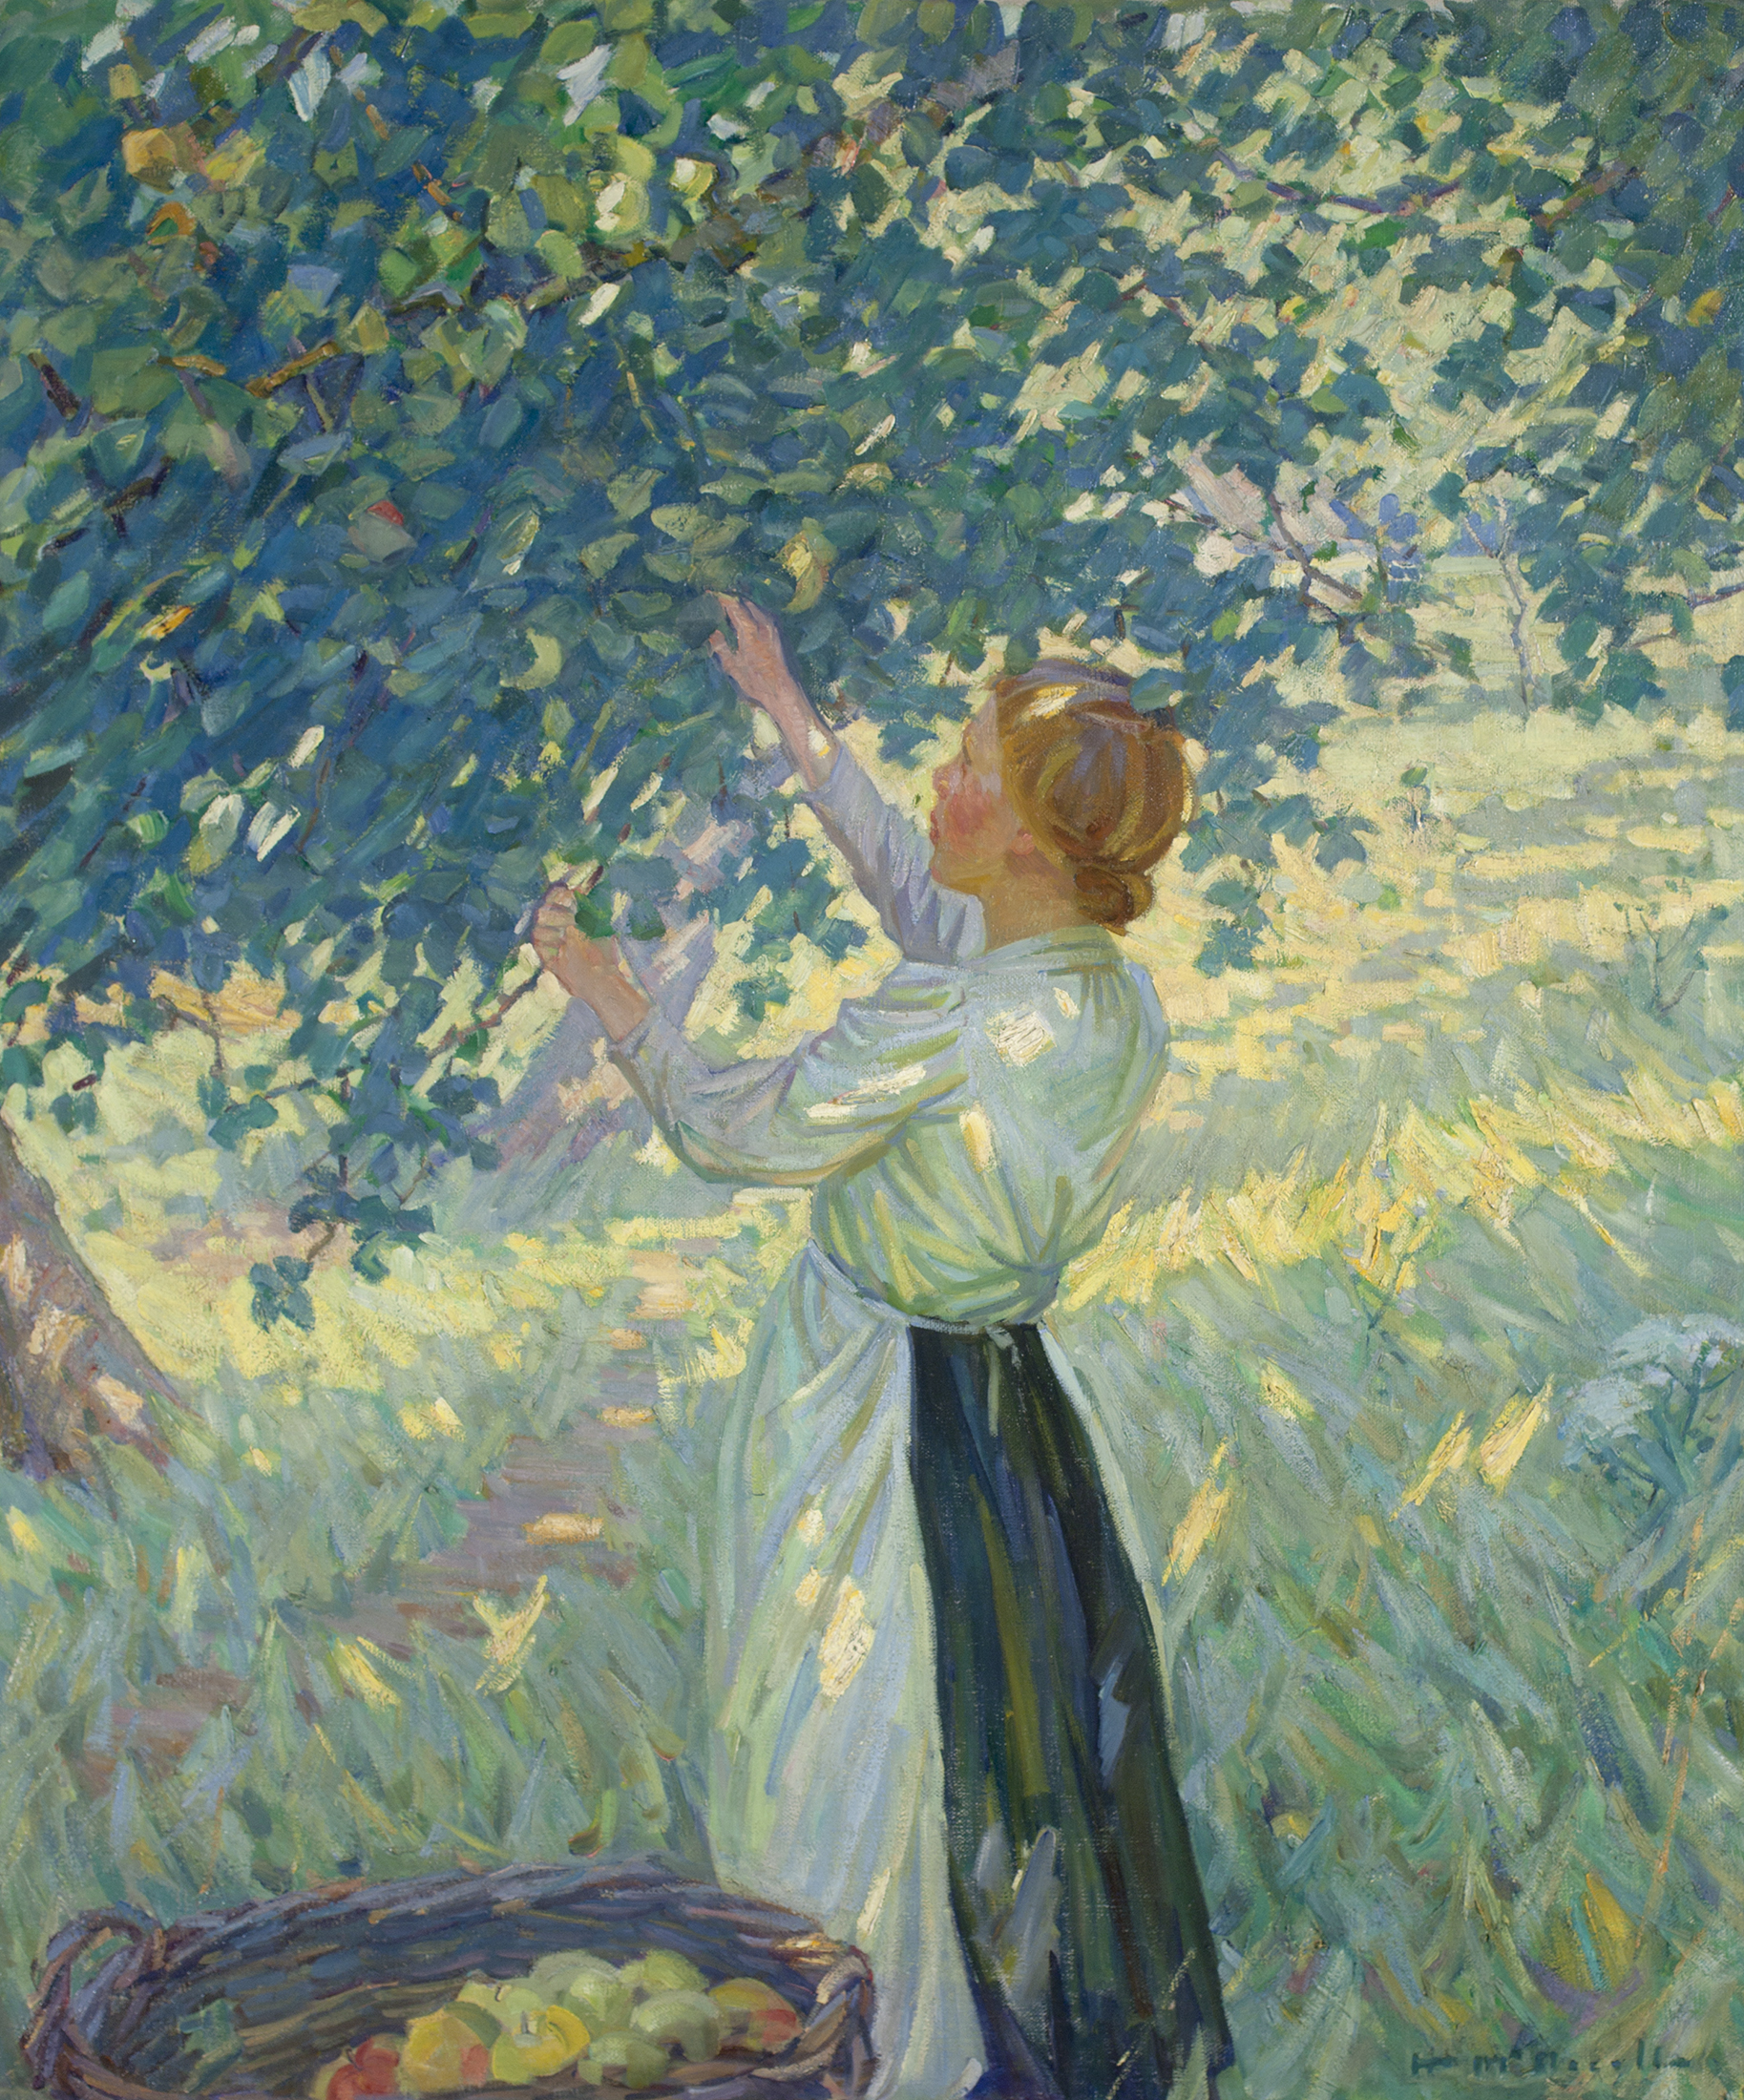 A woman seen in profile occupies the centre of the composition. Her arms are raised to pick apples from a tree whose foliage fills the upper area. The grass is dappled in yellow, green, blue and lilac.